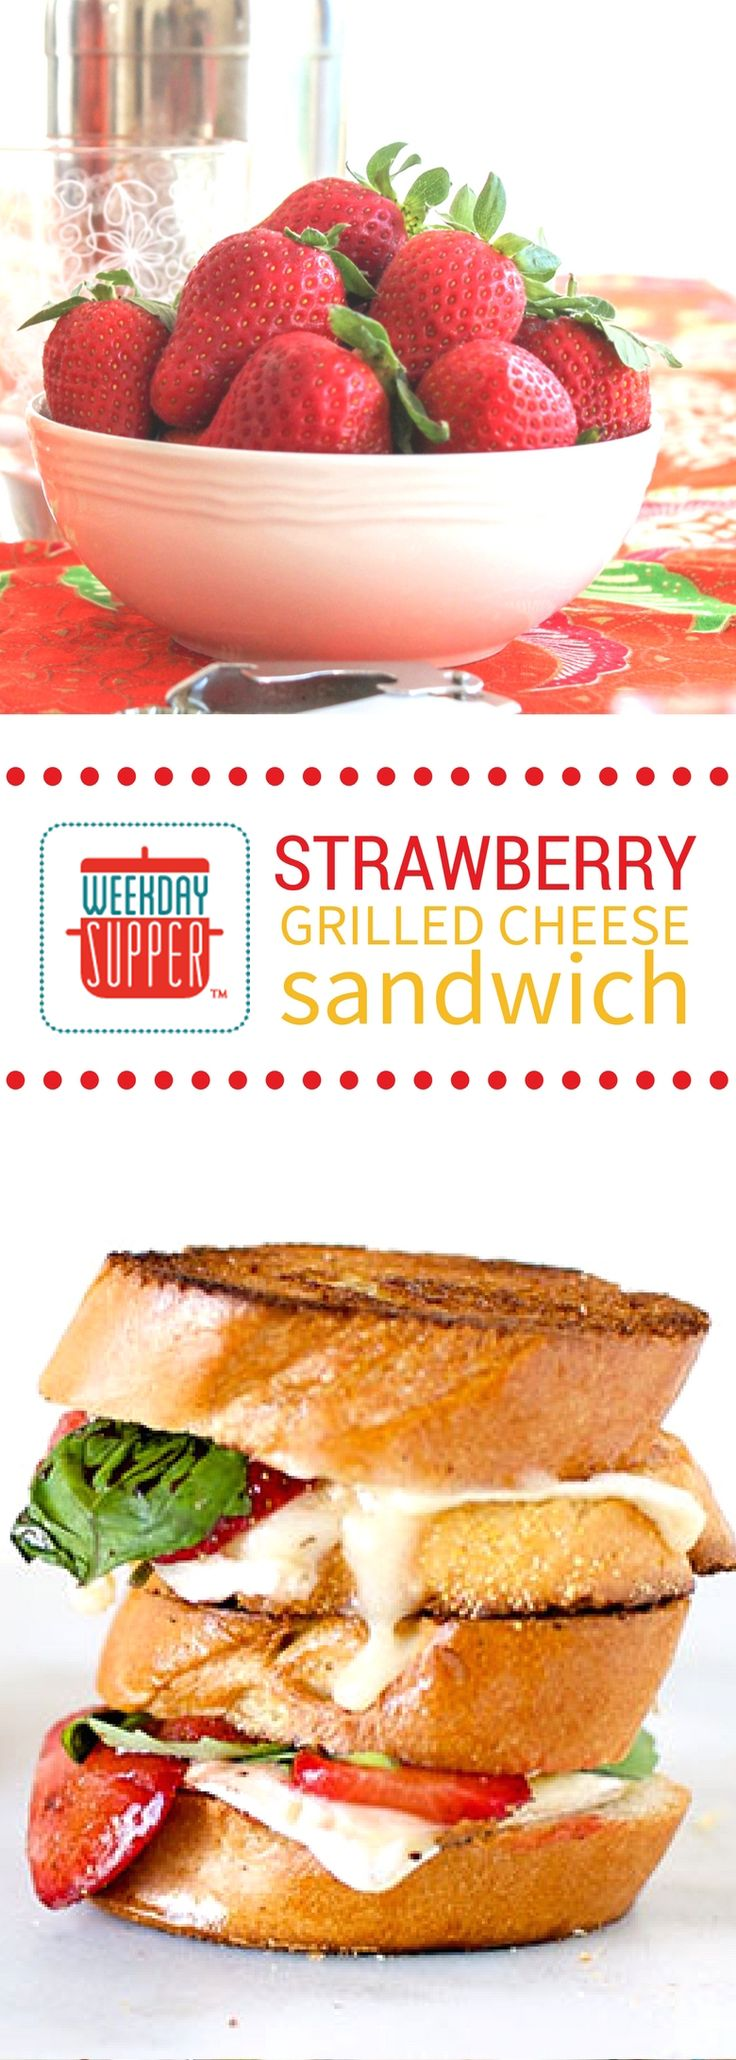 Rich creamy Brie is the perfect counterpoint to the balsamic roasted strawberries in these perfectly decadent Strawberry Grilled Cheese sandwiches. Make a pile for your #WeekdaySupper tonight!